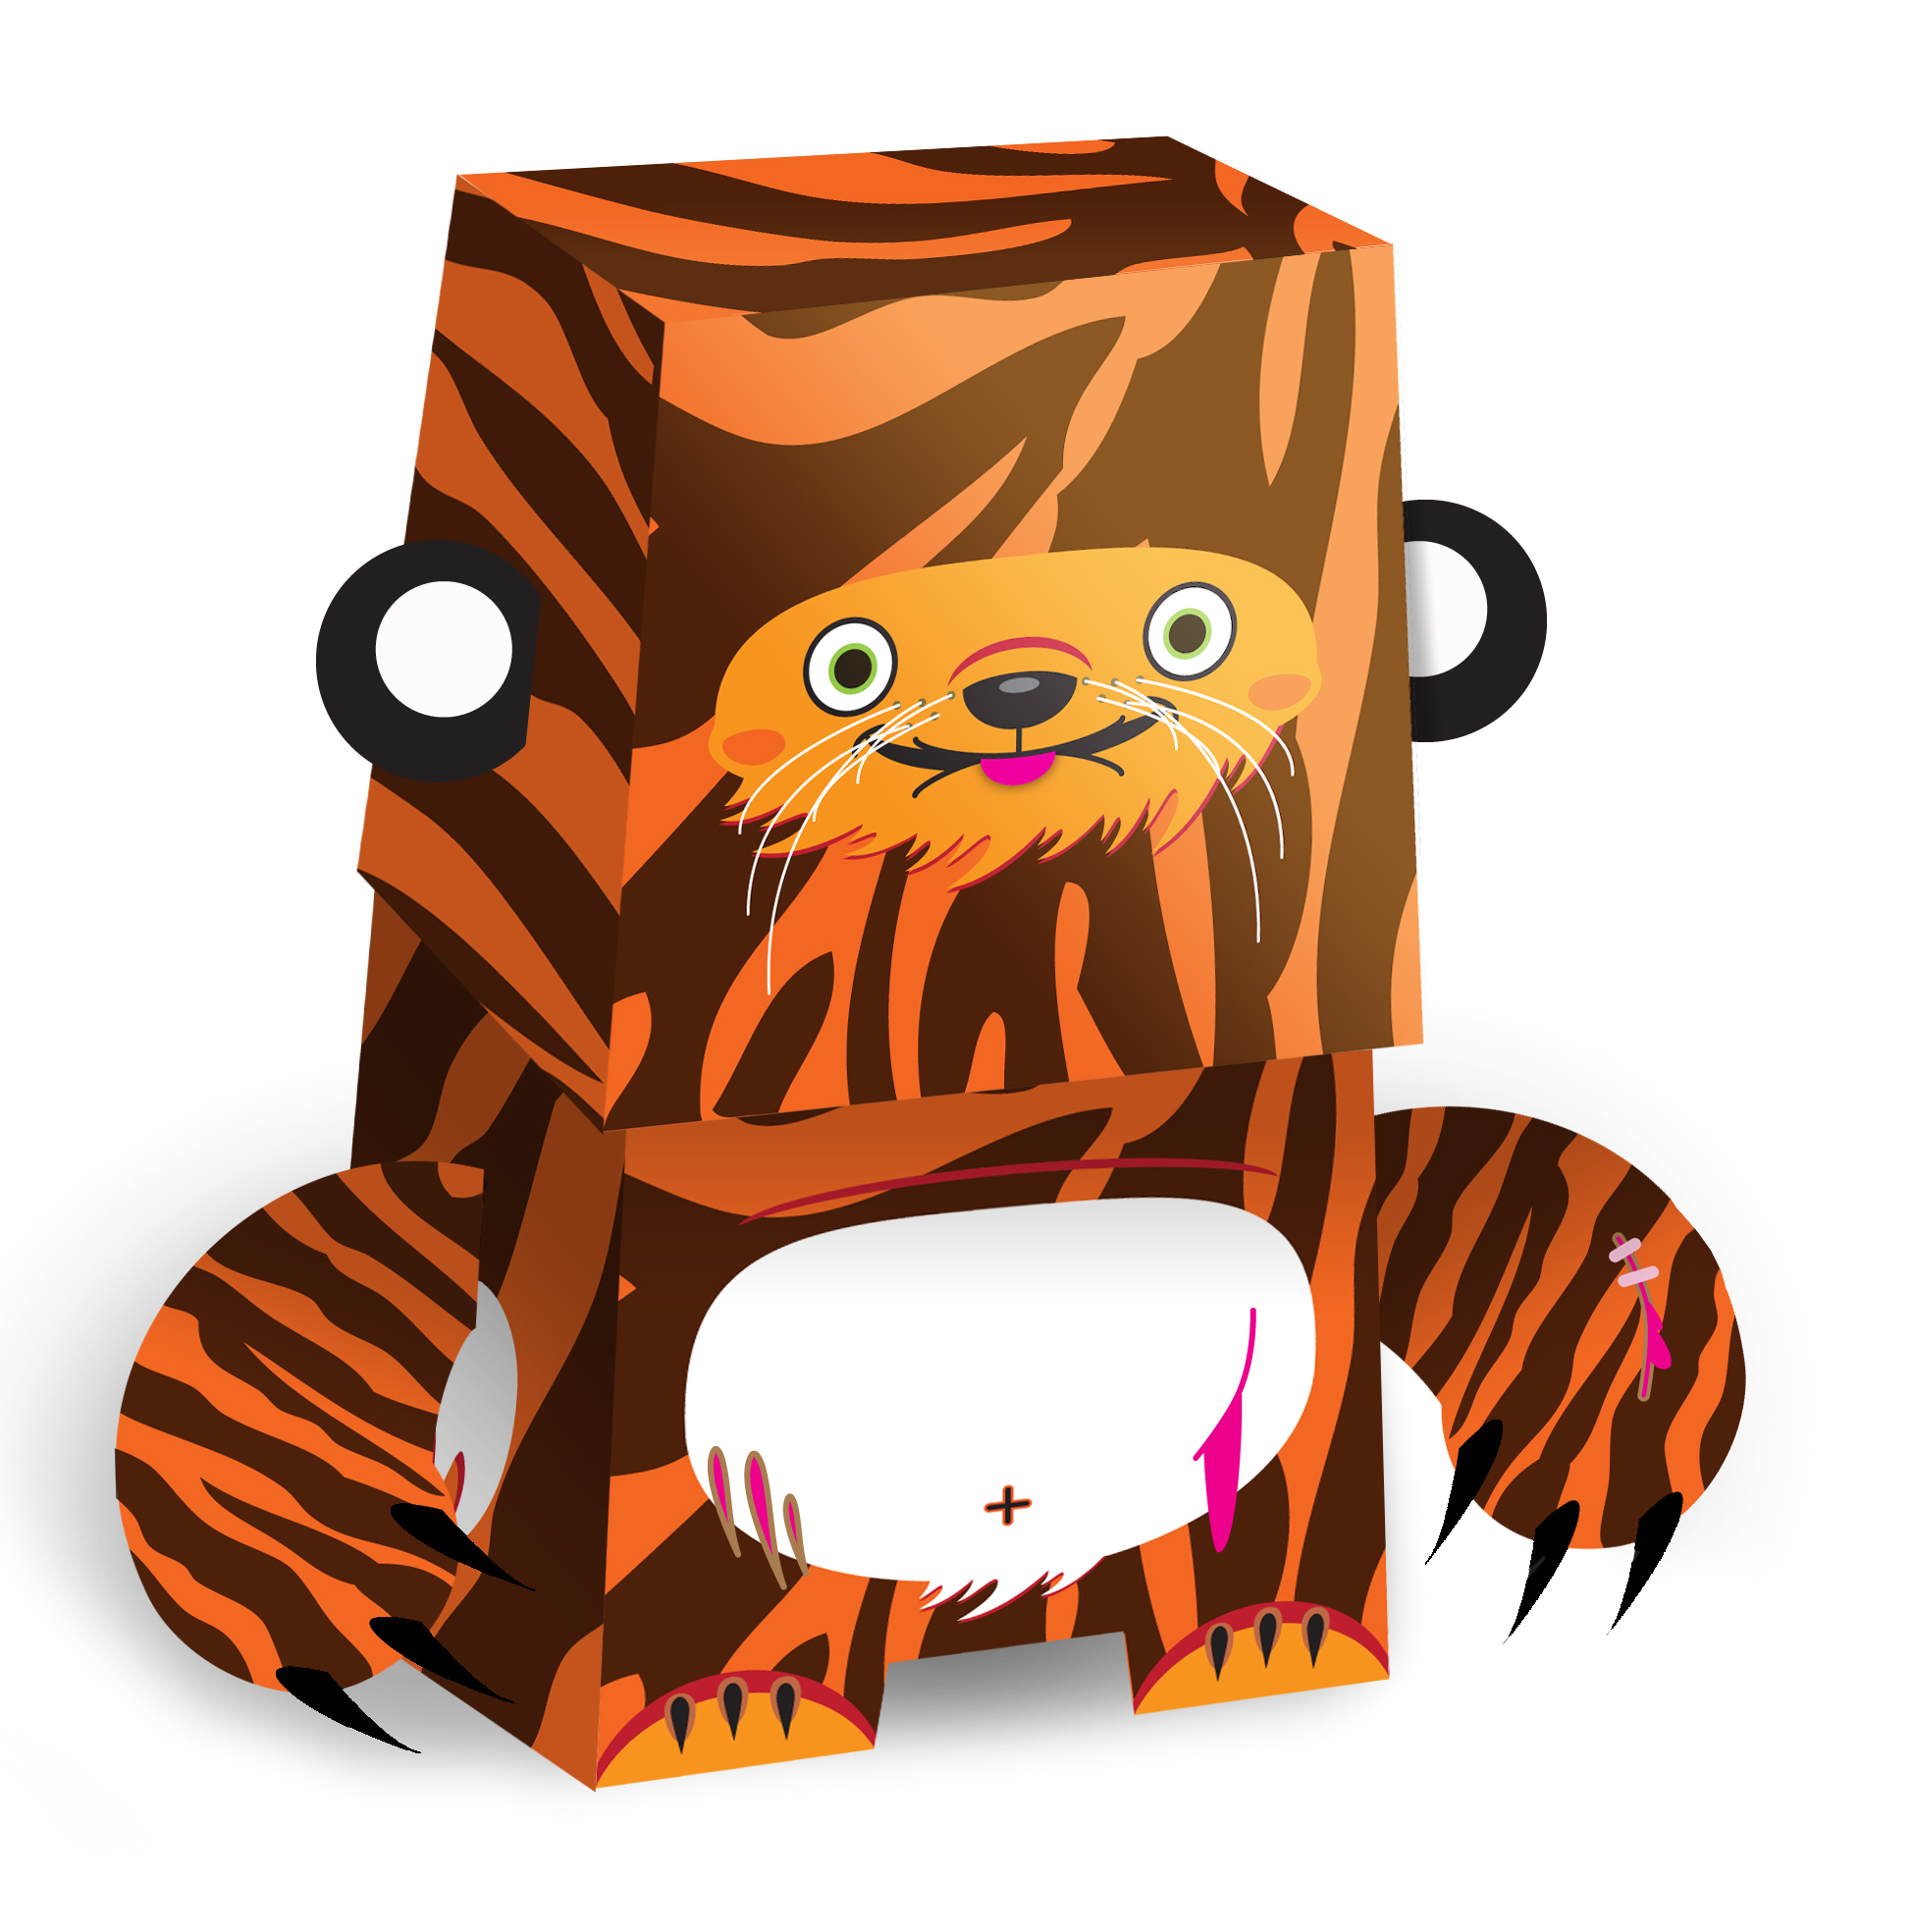 Paper Toy Design / Character Design